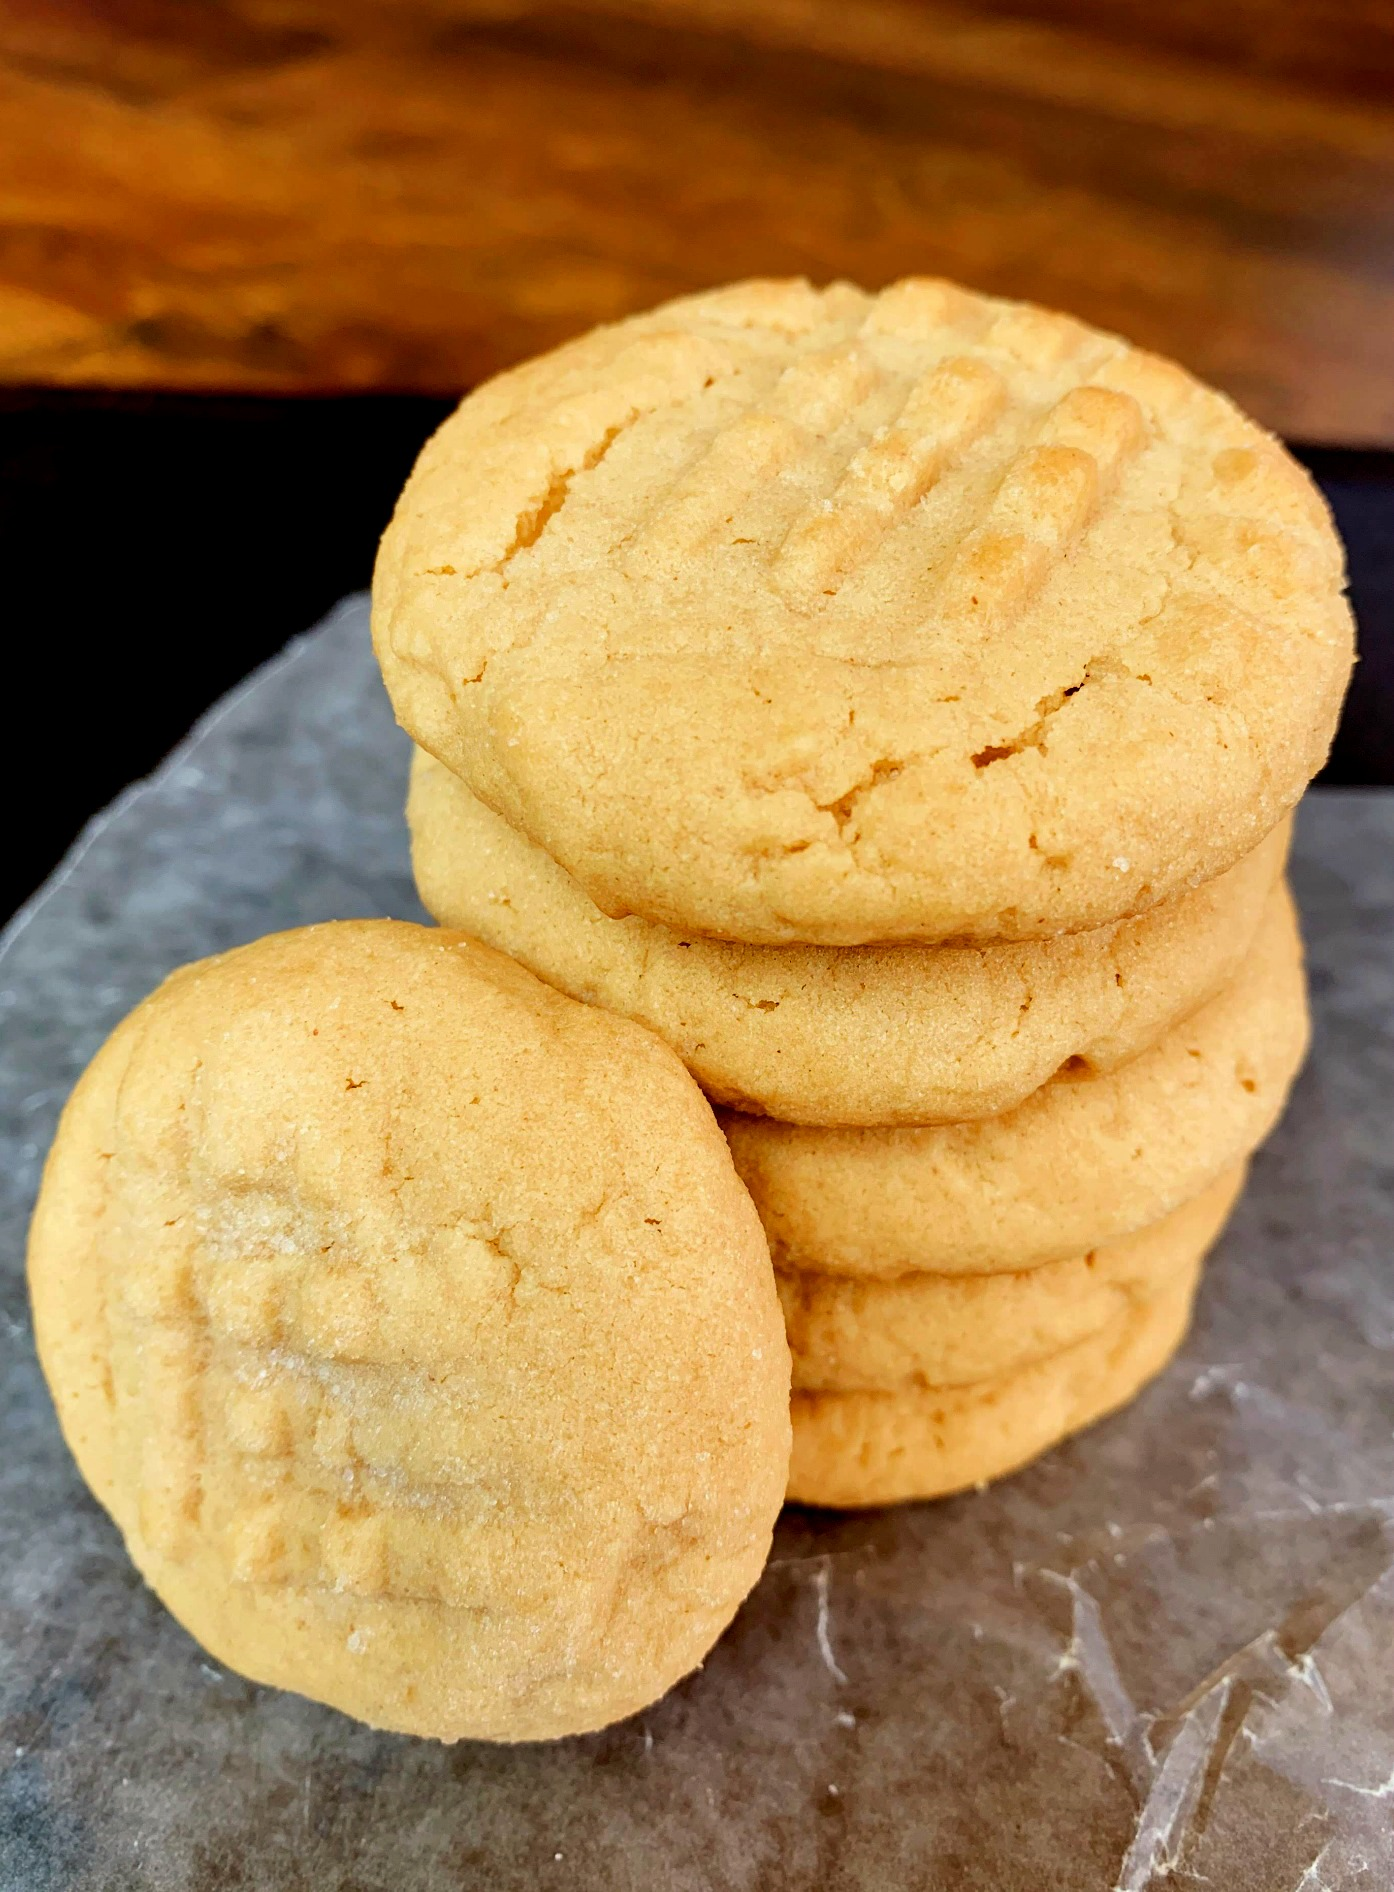 a pile of 4 old fashioned peanut butter cookies with one leaning against it